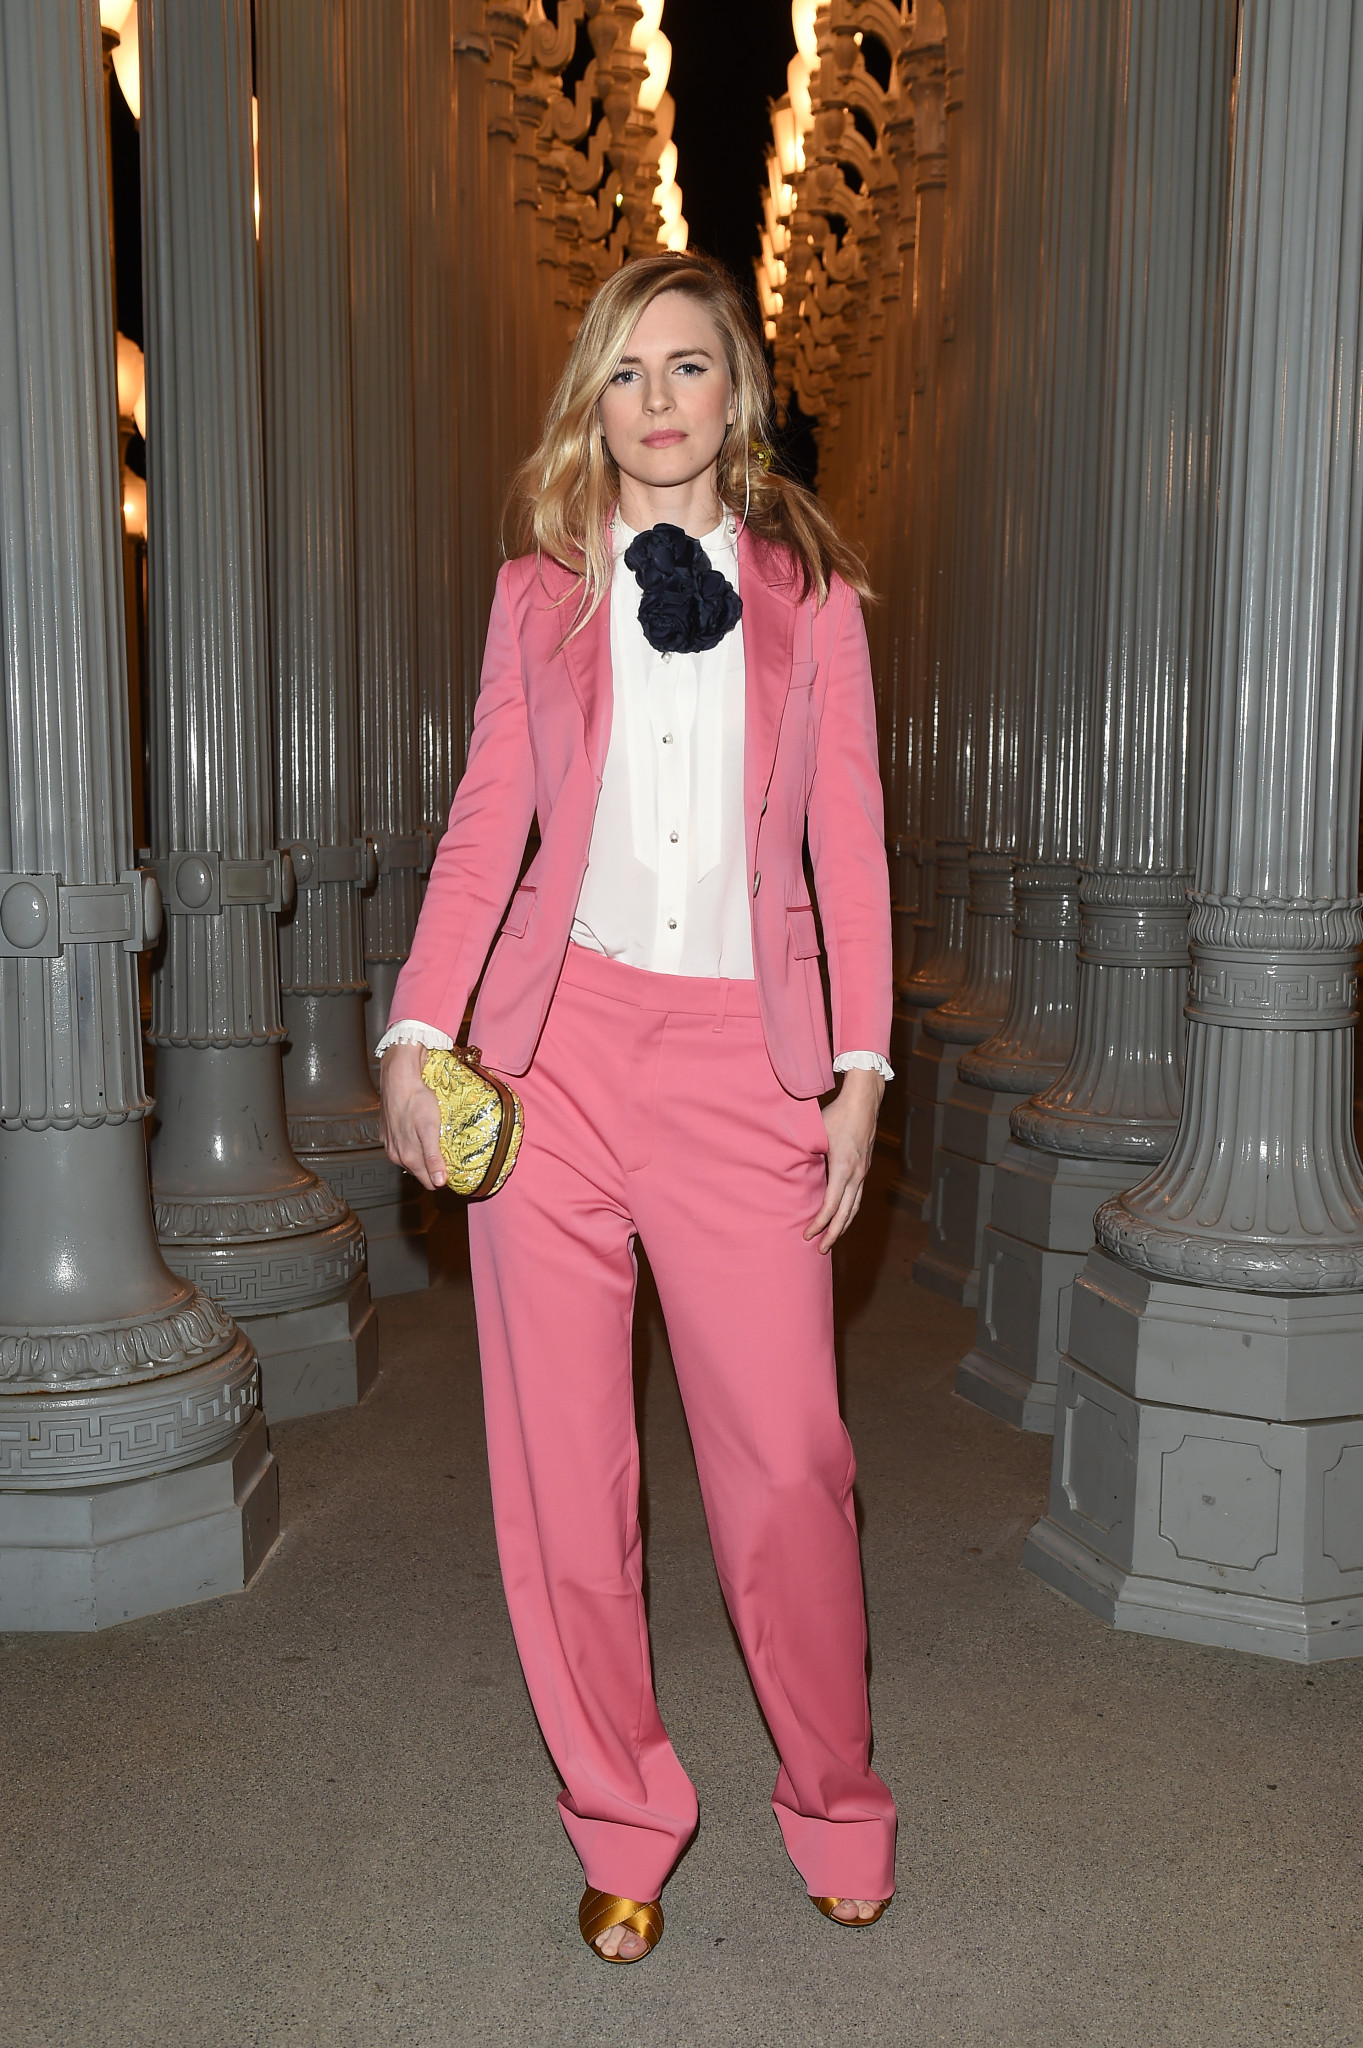 LOS ANGELES, CA - NOVEMBER 07: Actress Brit Marling attends LACMA 2015 Art+Film Gala Honoring James Turrell and Alejandro G Iñárritu, Presented by Gucci at LACMA on November 7, 2015 in Los Angeles, California.  (Photo by Venturelli/Getty Images For LACMA)